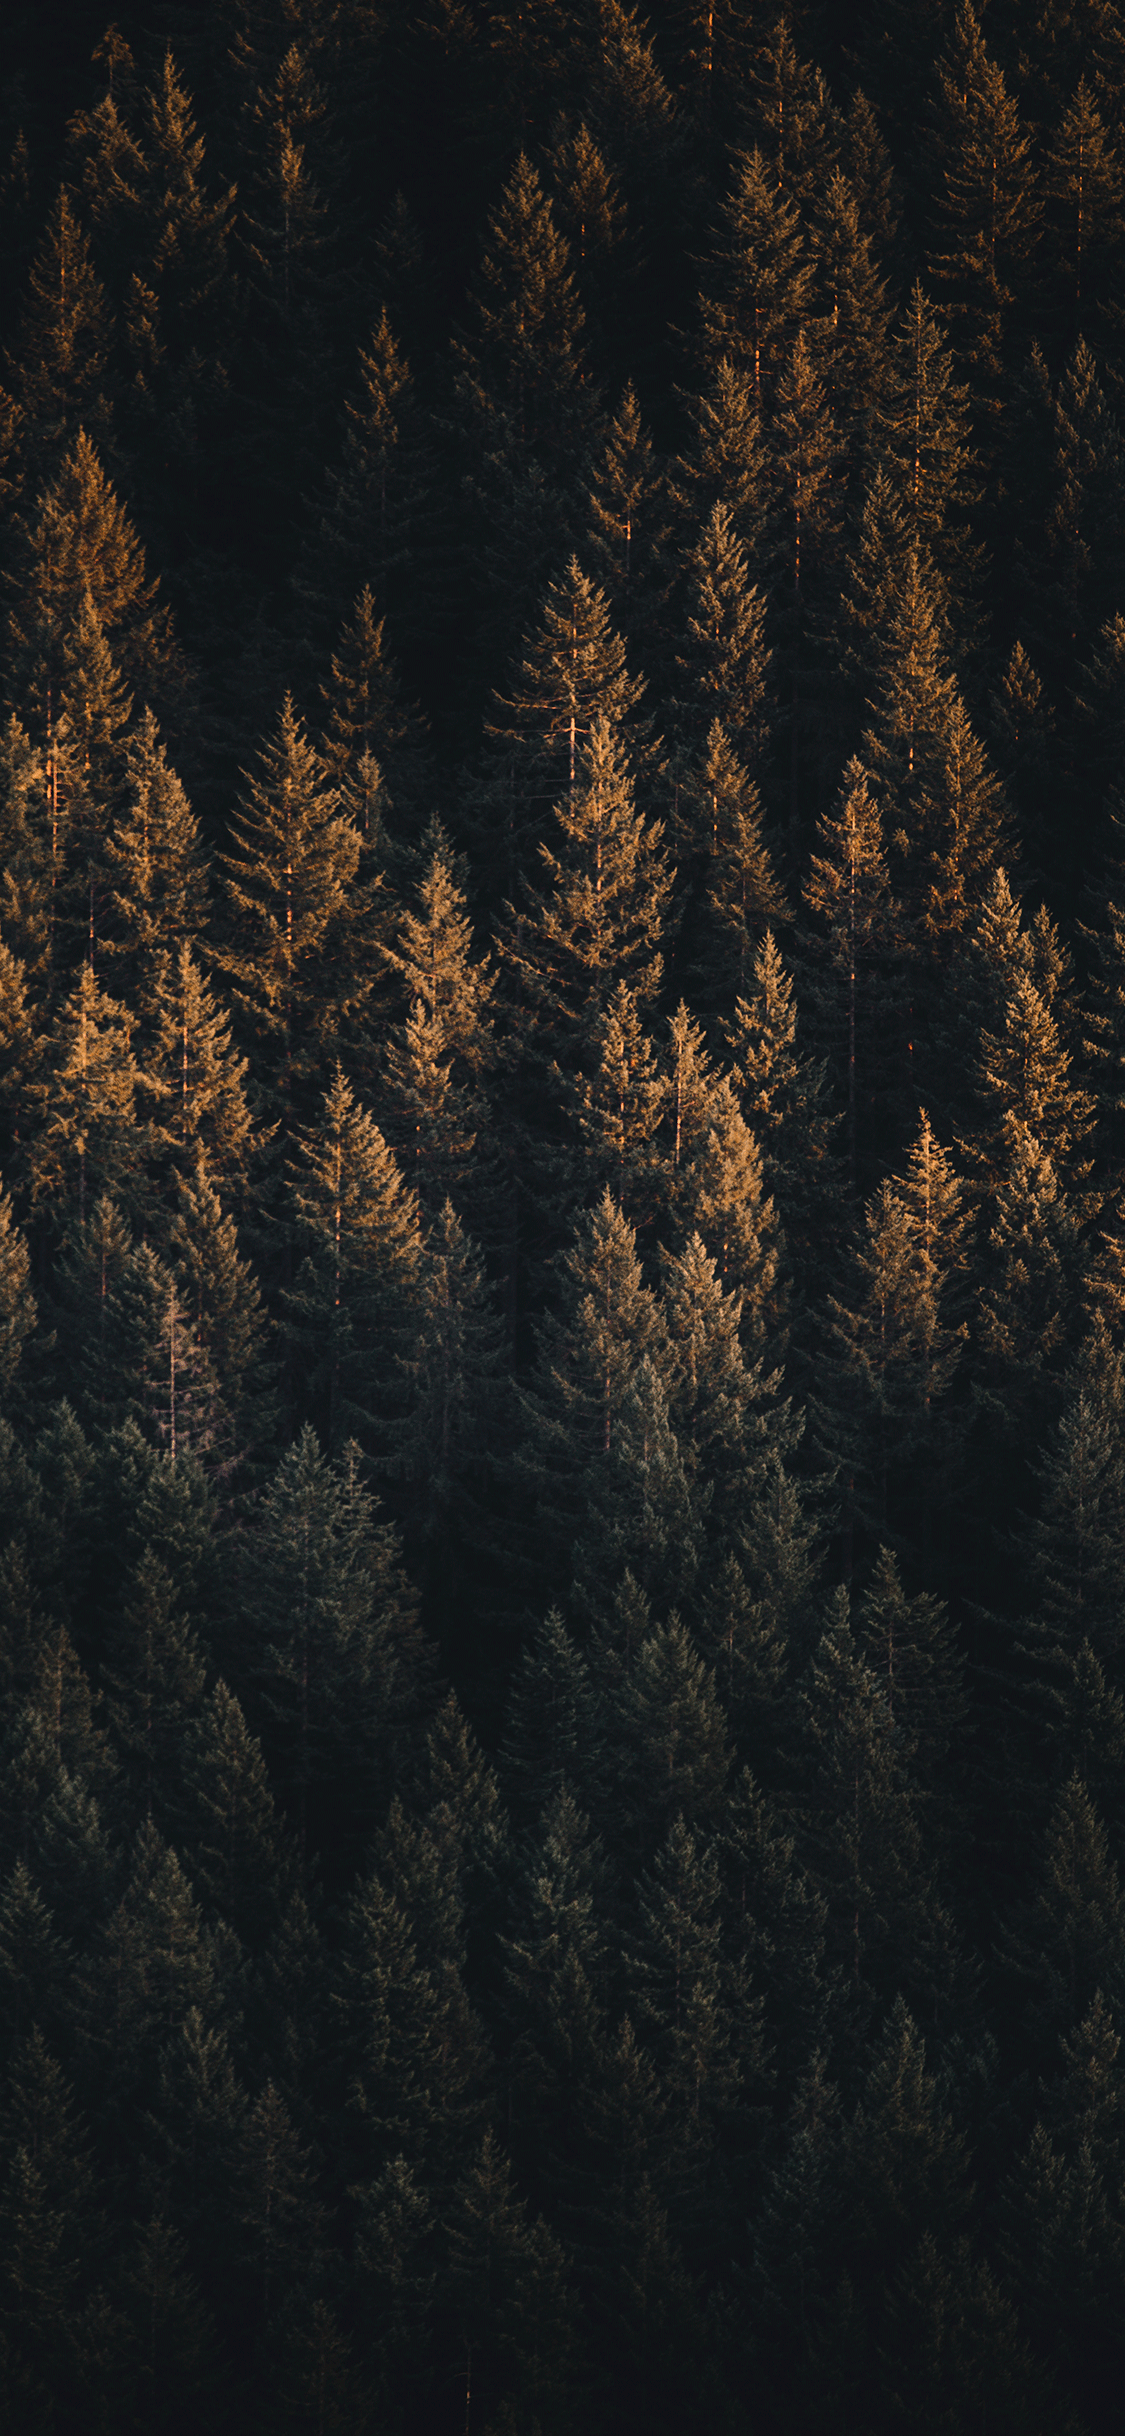 Forest Wallpaper For Iphone X 8 7 6 Free Download On 3wallpapers